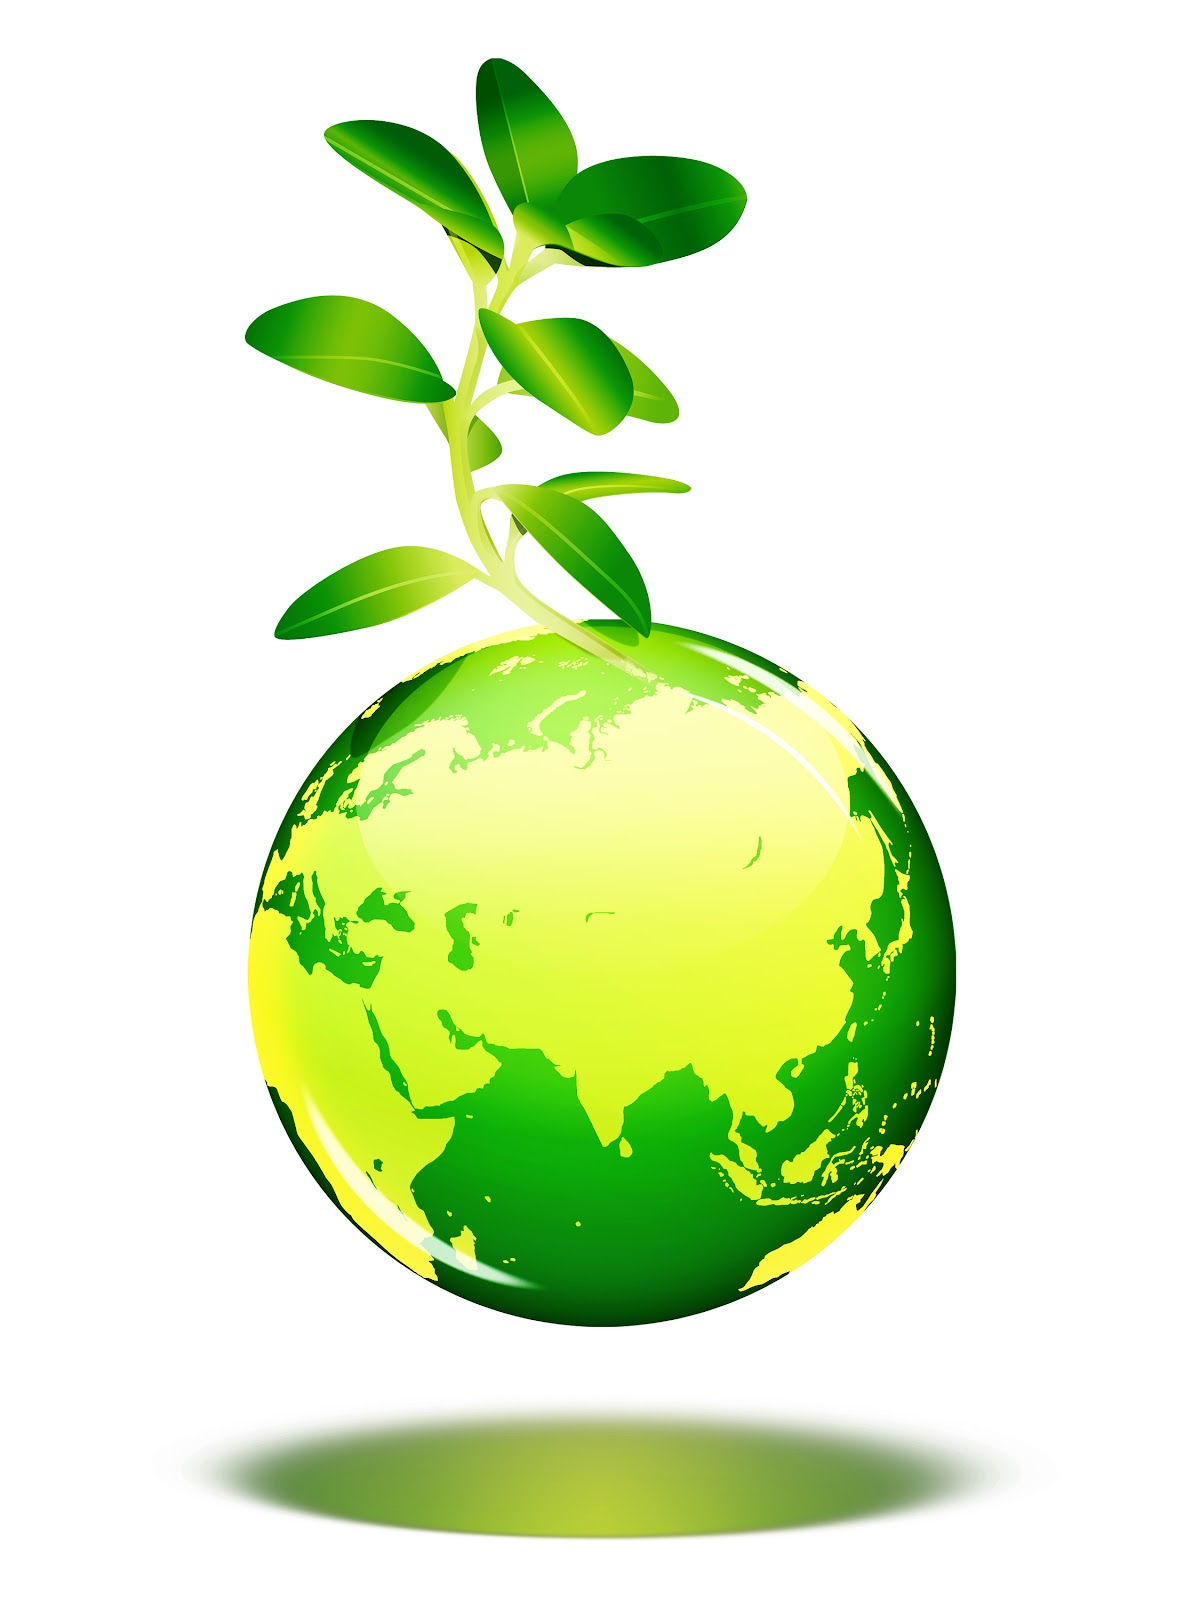 essay on clean environment green environment Home importance of keeping the environment clean and with a beautiful green society you can inspire others to follow this essay is very helpfull.